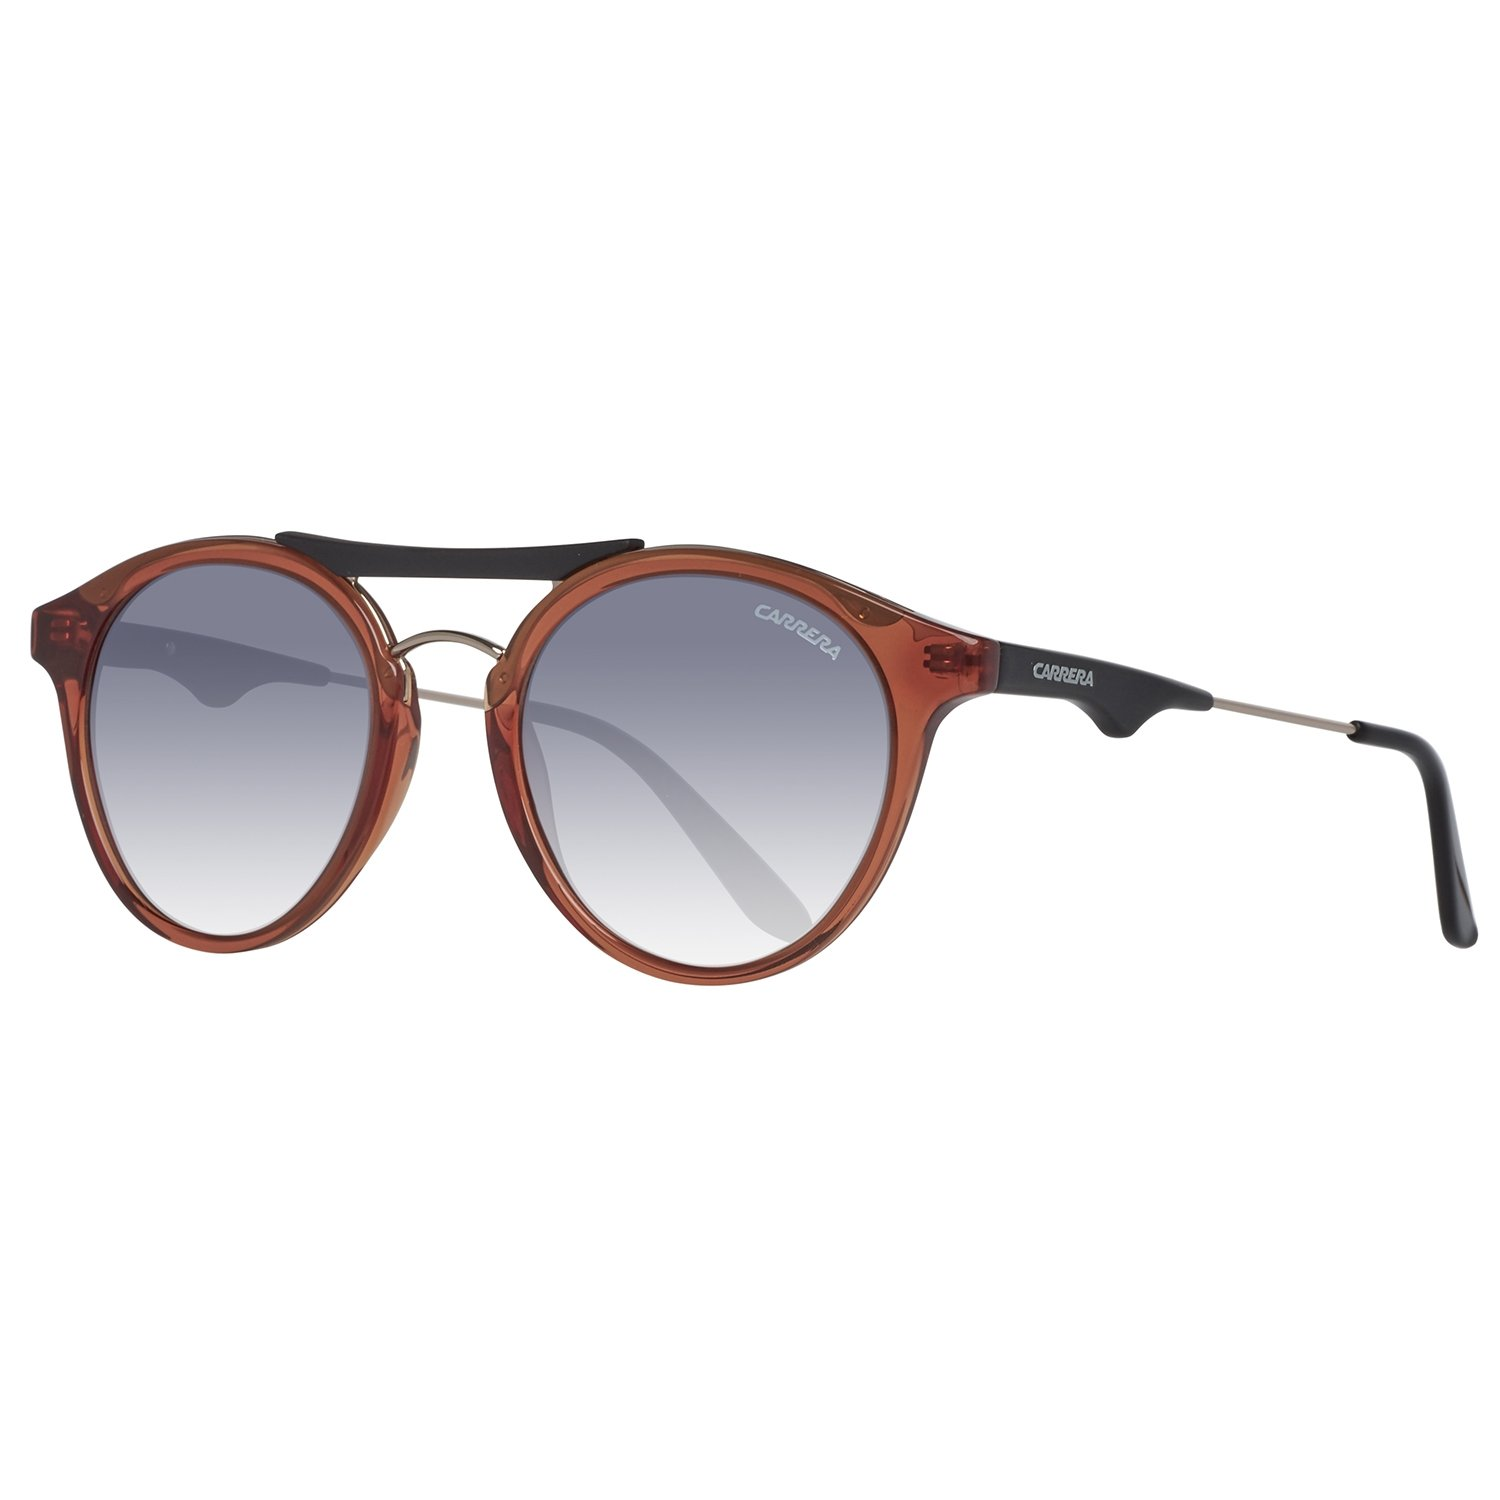 Carrera 6008 NL Gafas de sol, Marrón (Brown Lt Gold/Grey), 50 Unisex-Adulto